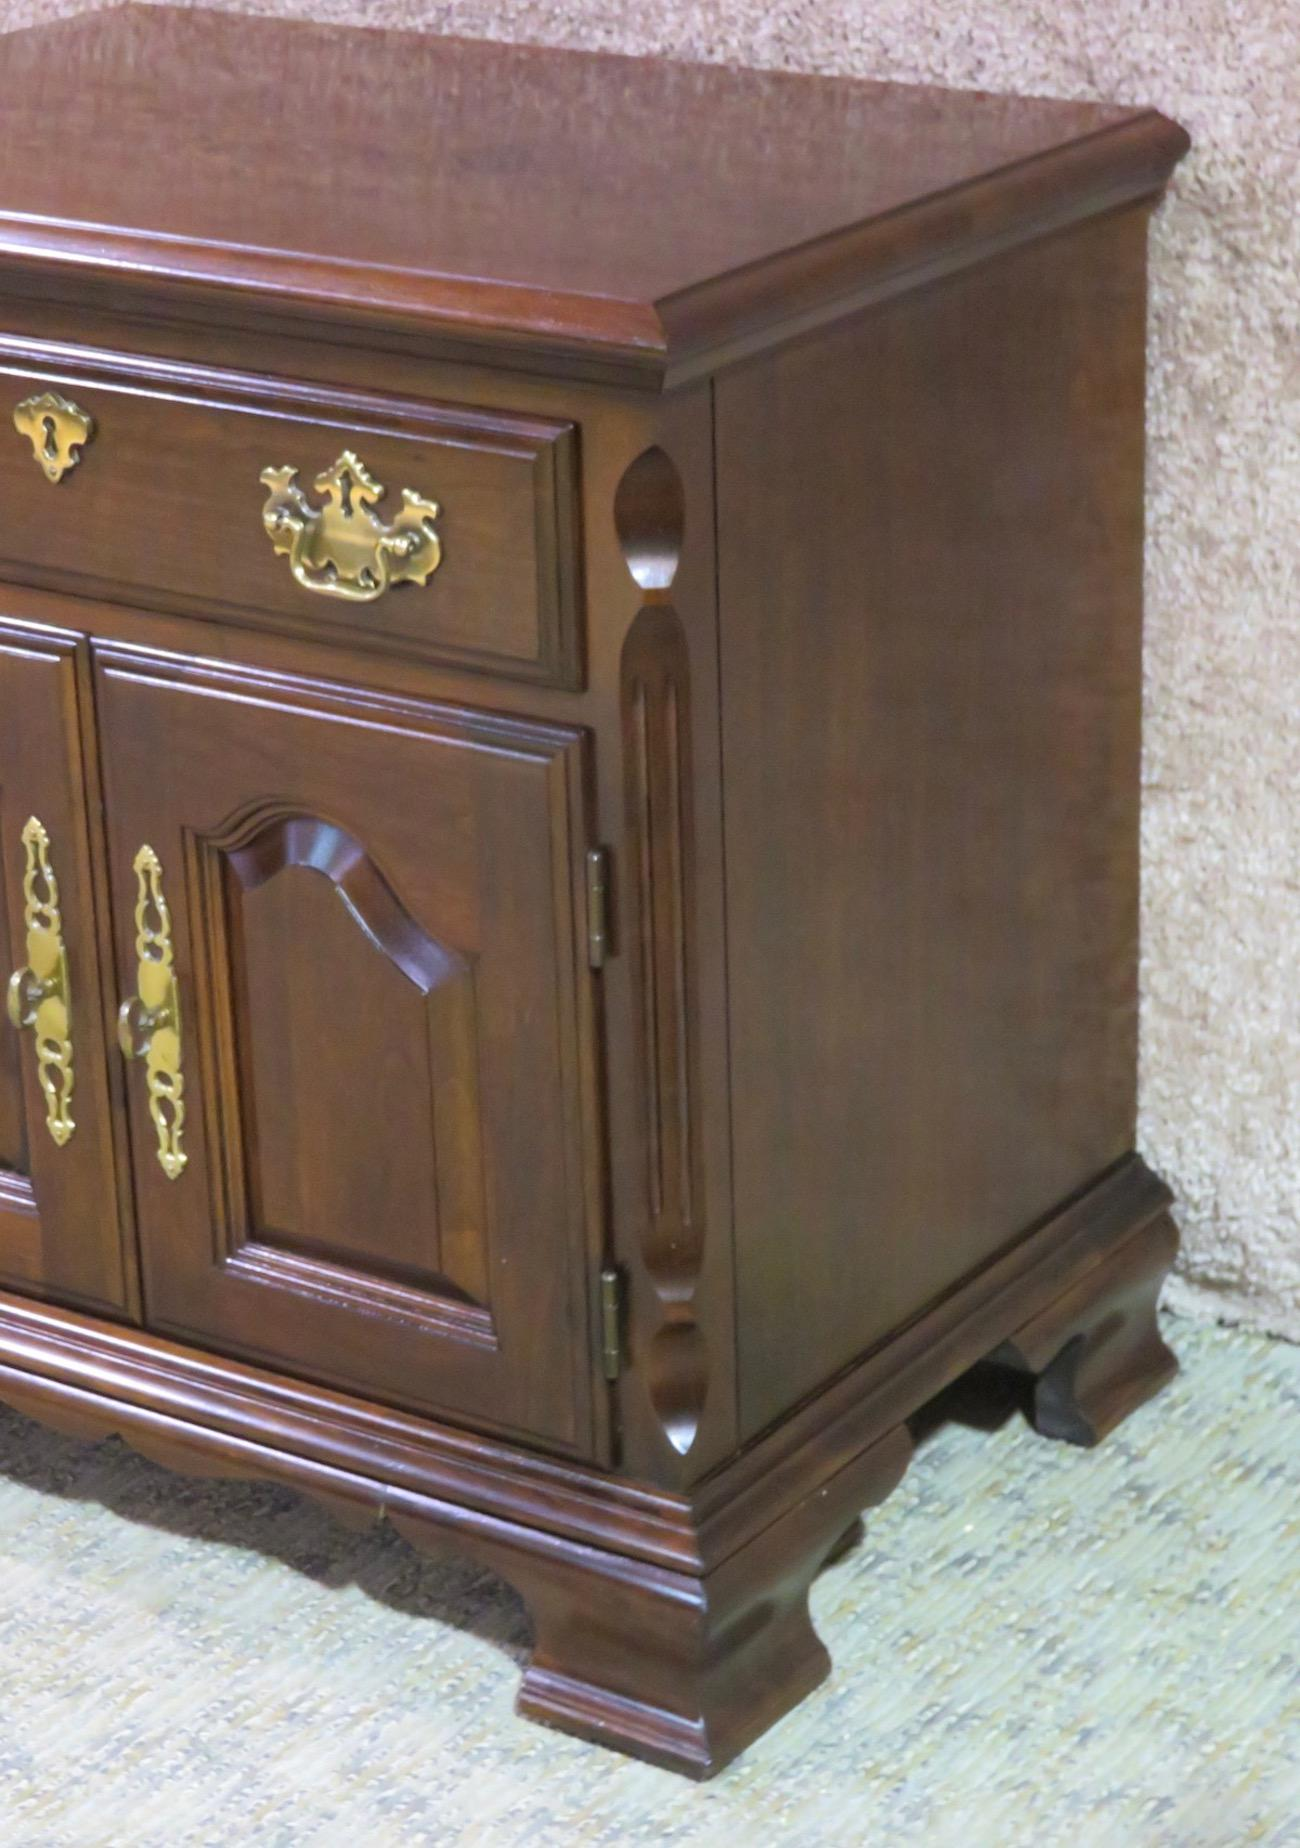 Awesome Pair Of Night Stands By Pennsylvania House. They Have A Traditional Style.  Made Of